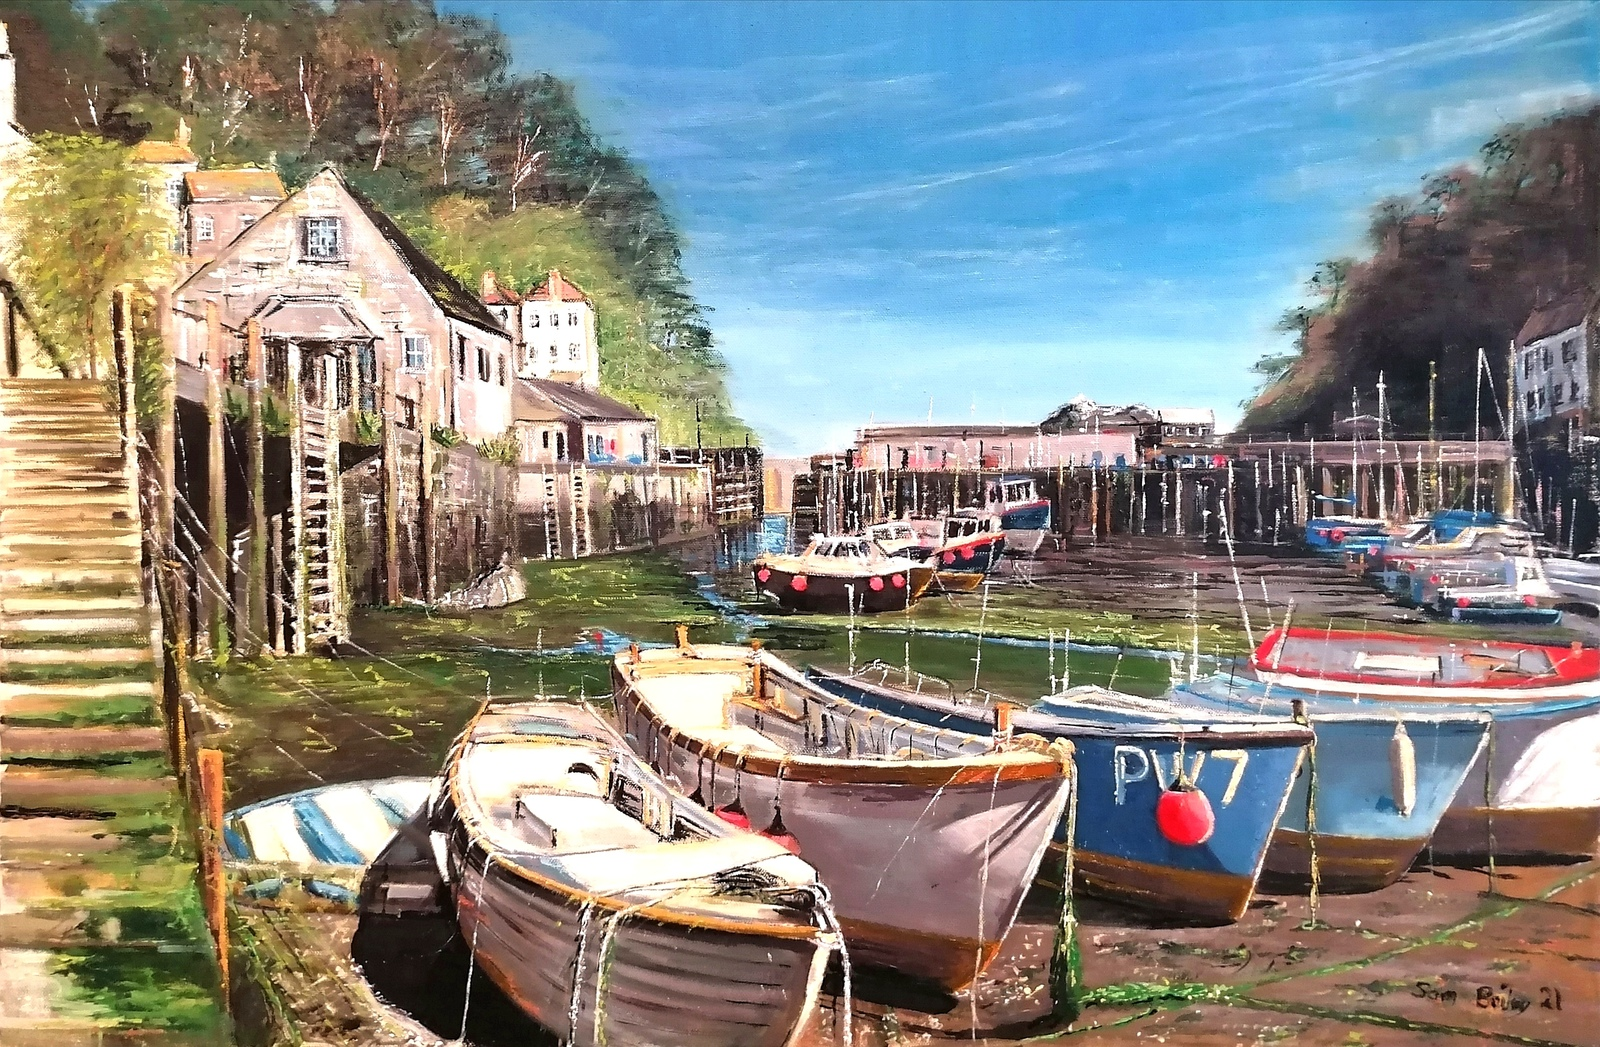 Polperro Harbour in the afternoon sun